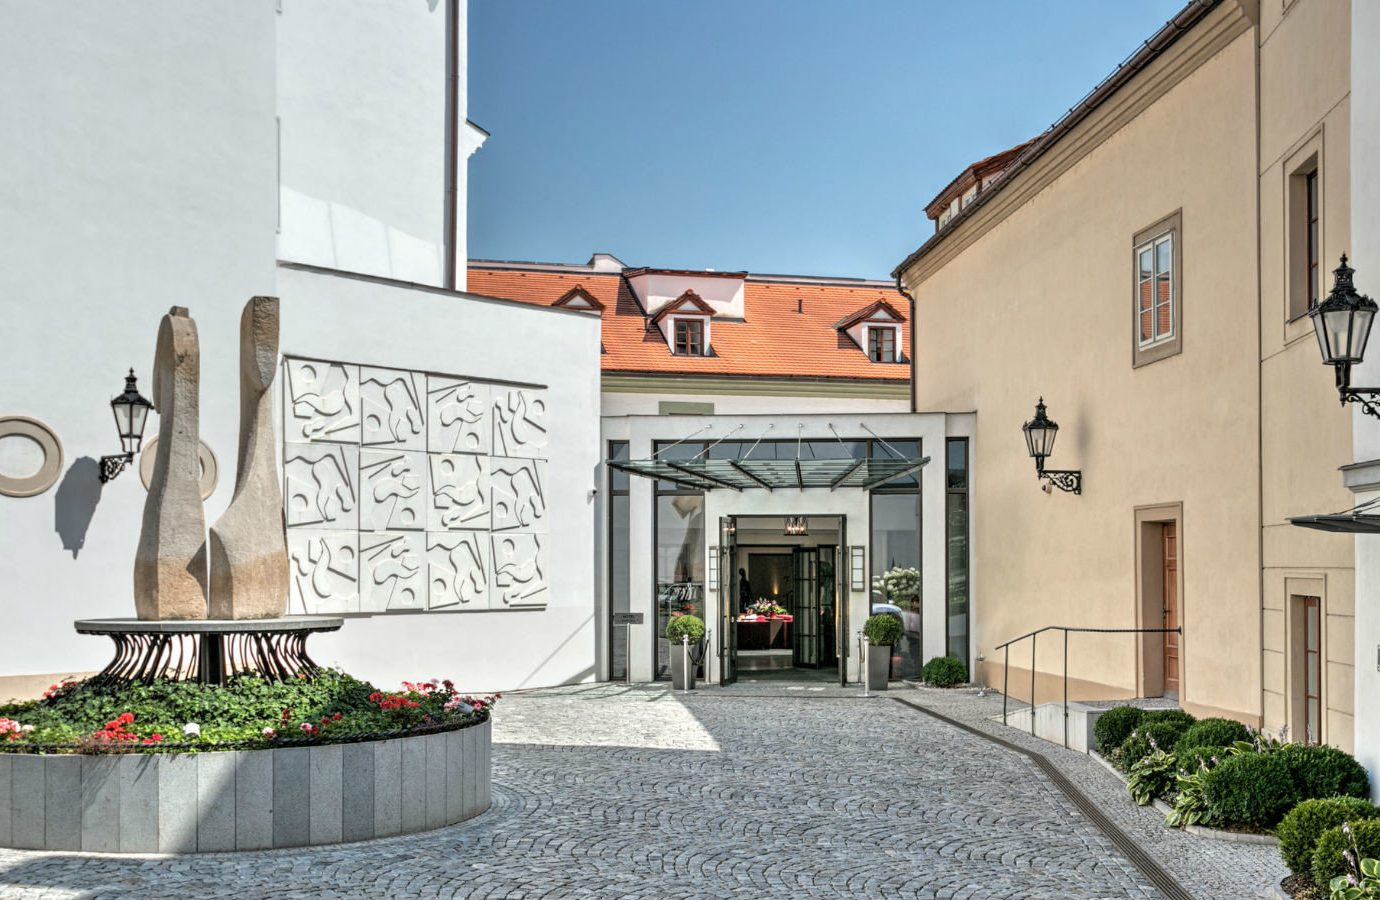 europe Hotels Prague property neighbourhood real estate facade building estate window house Courtyard hacienda